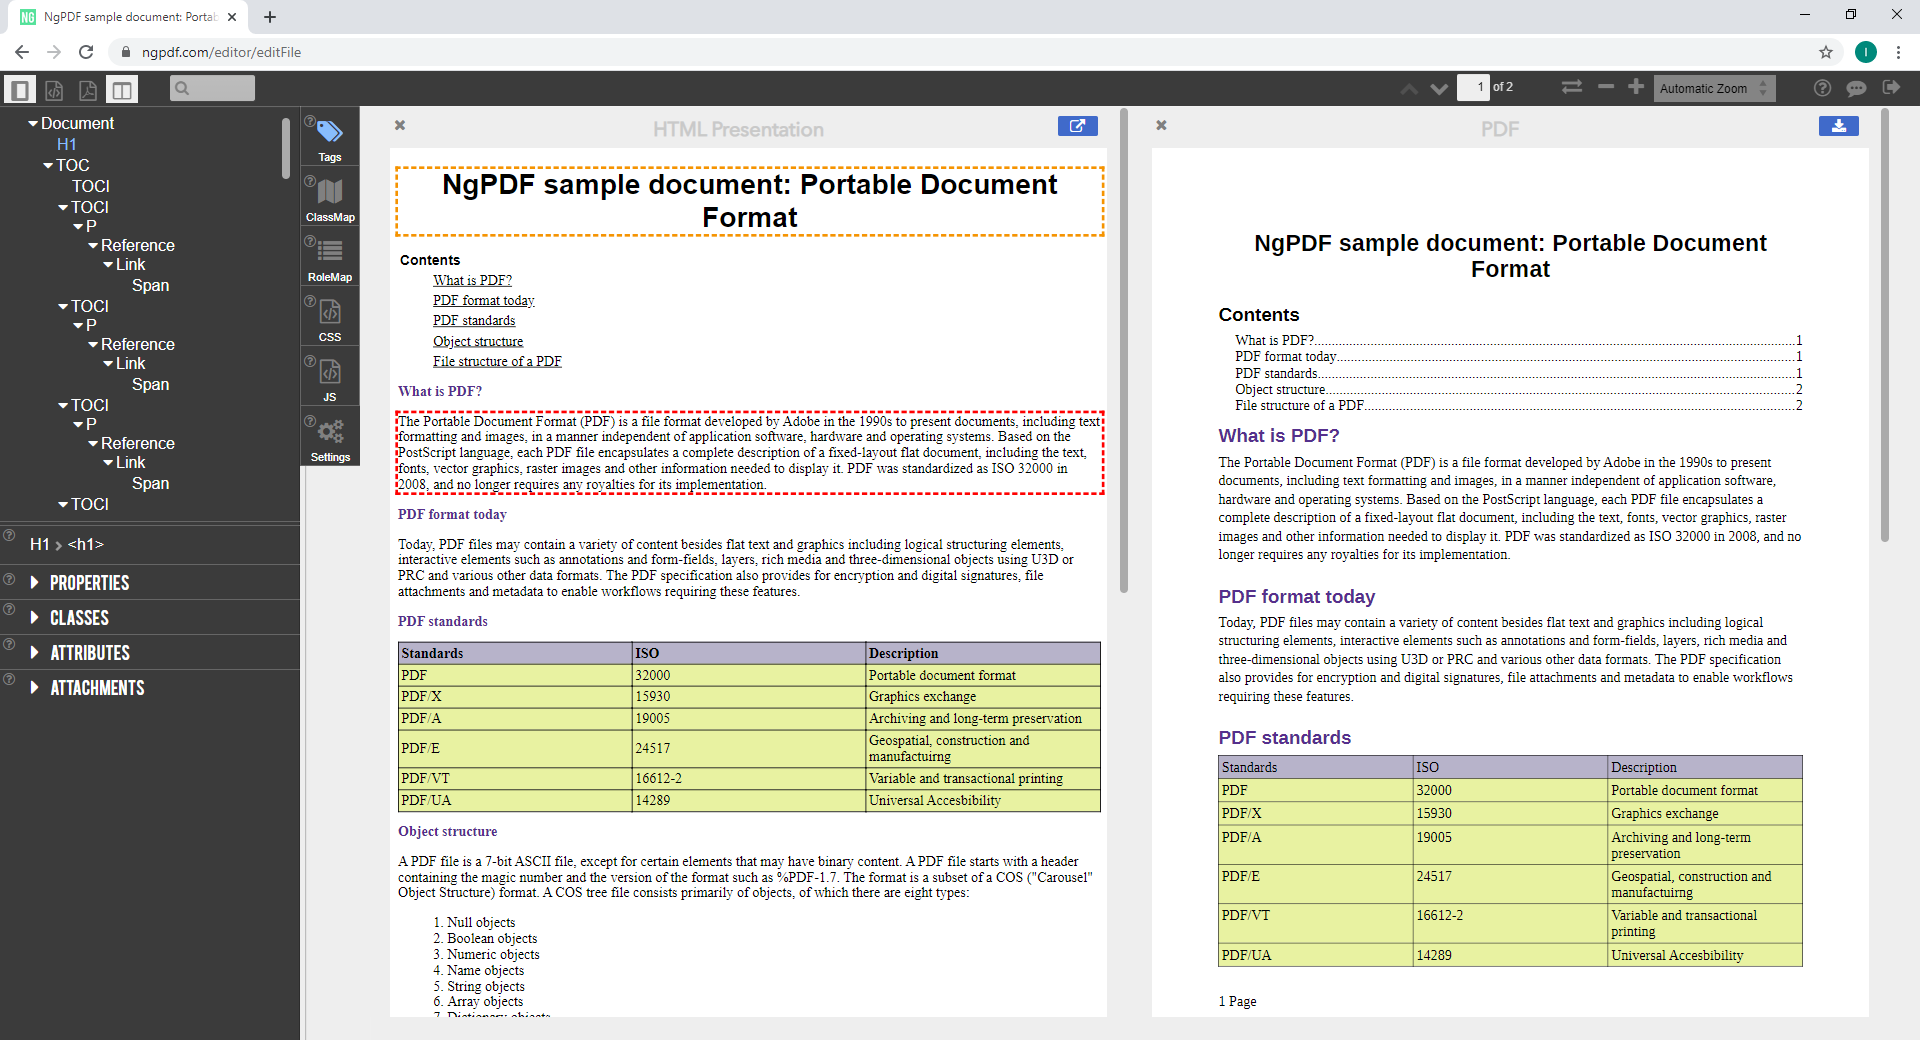 The HTML representation of the example PDF document in the ngPDF application